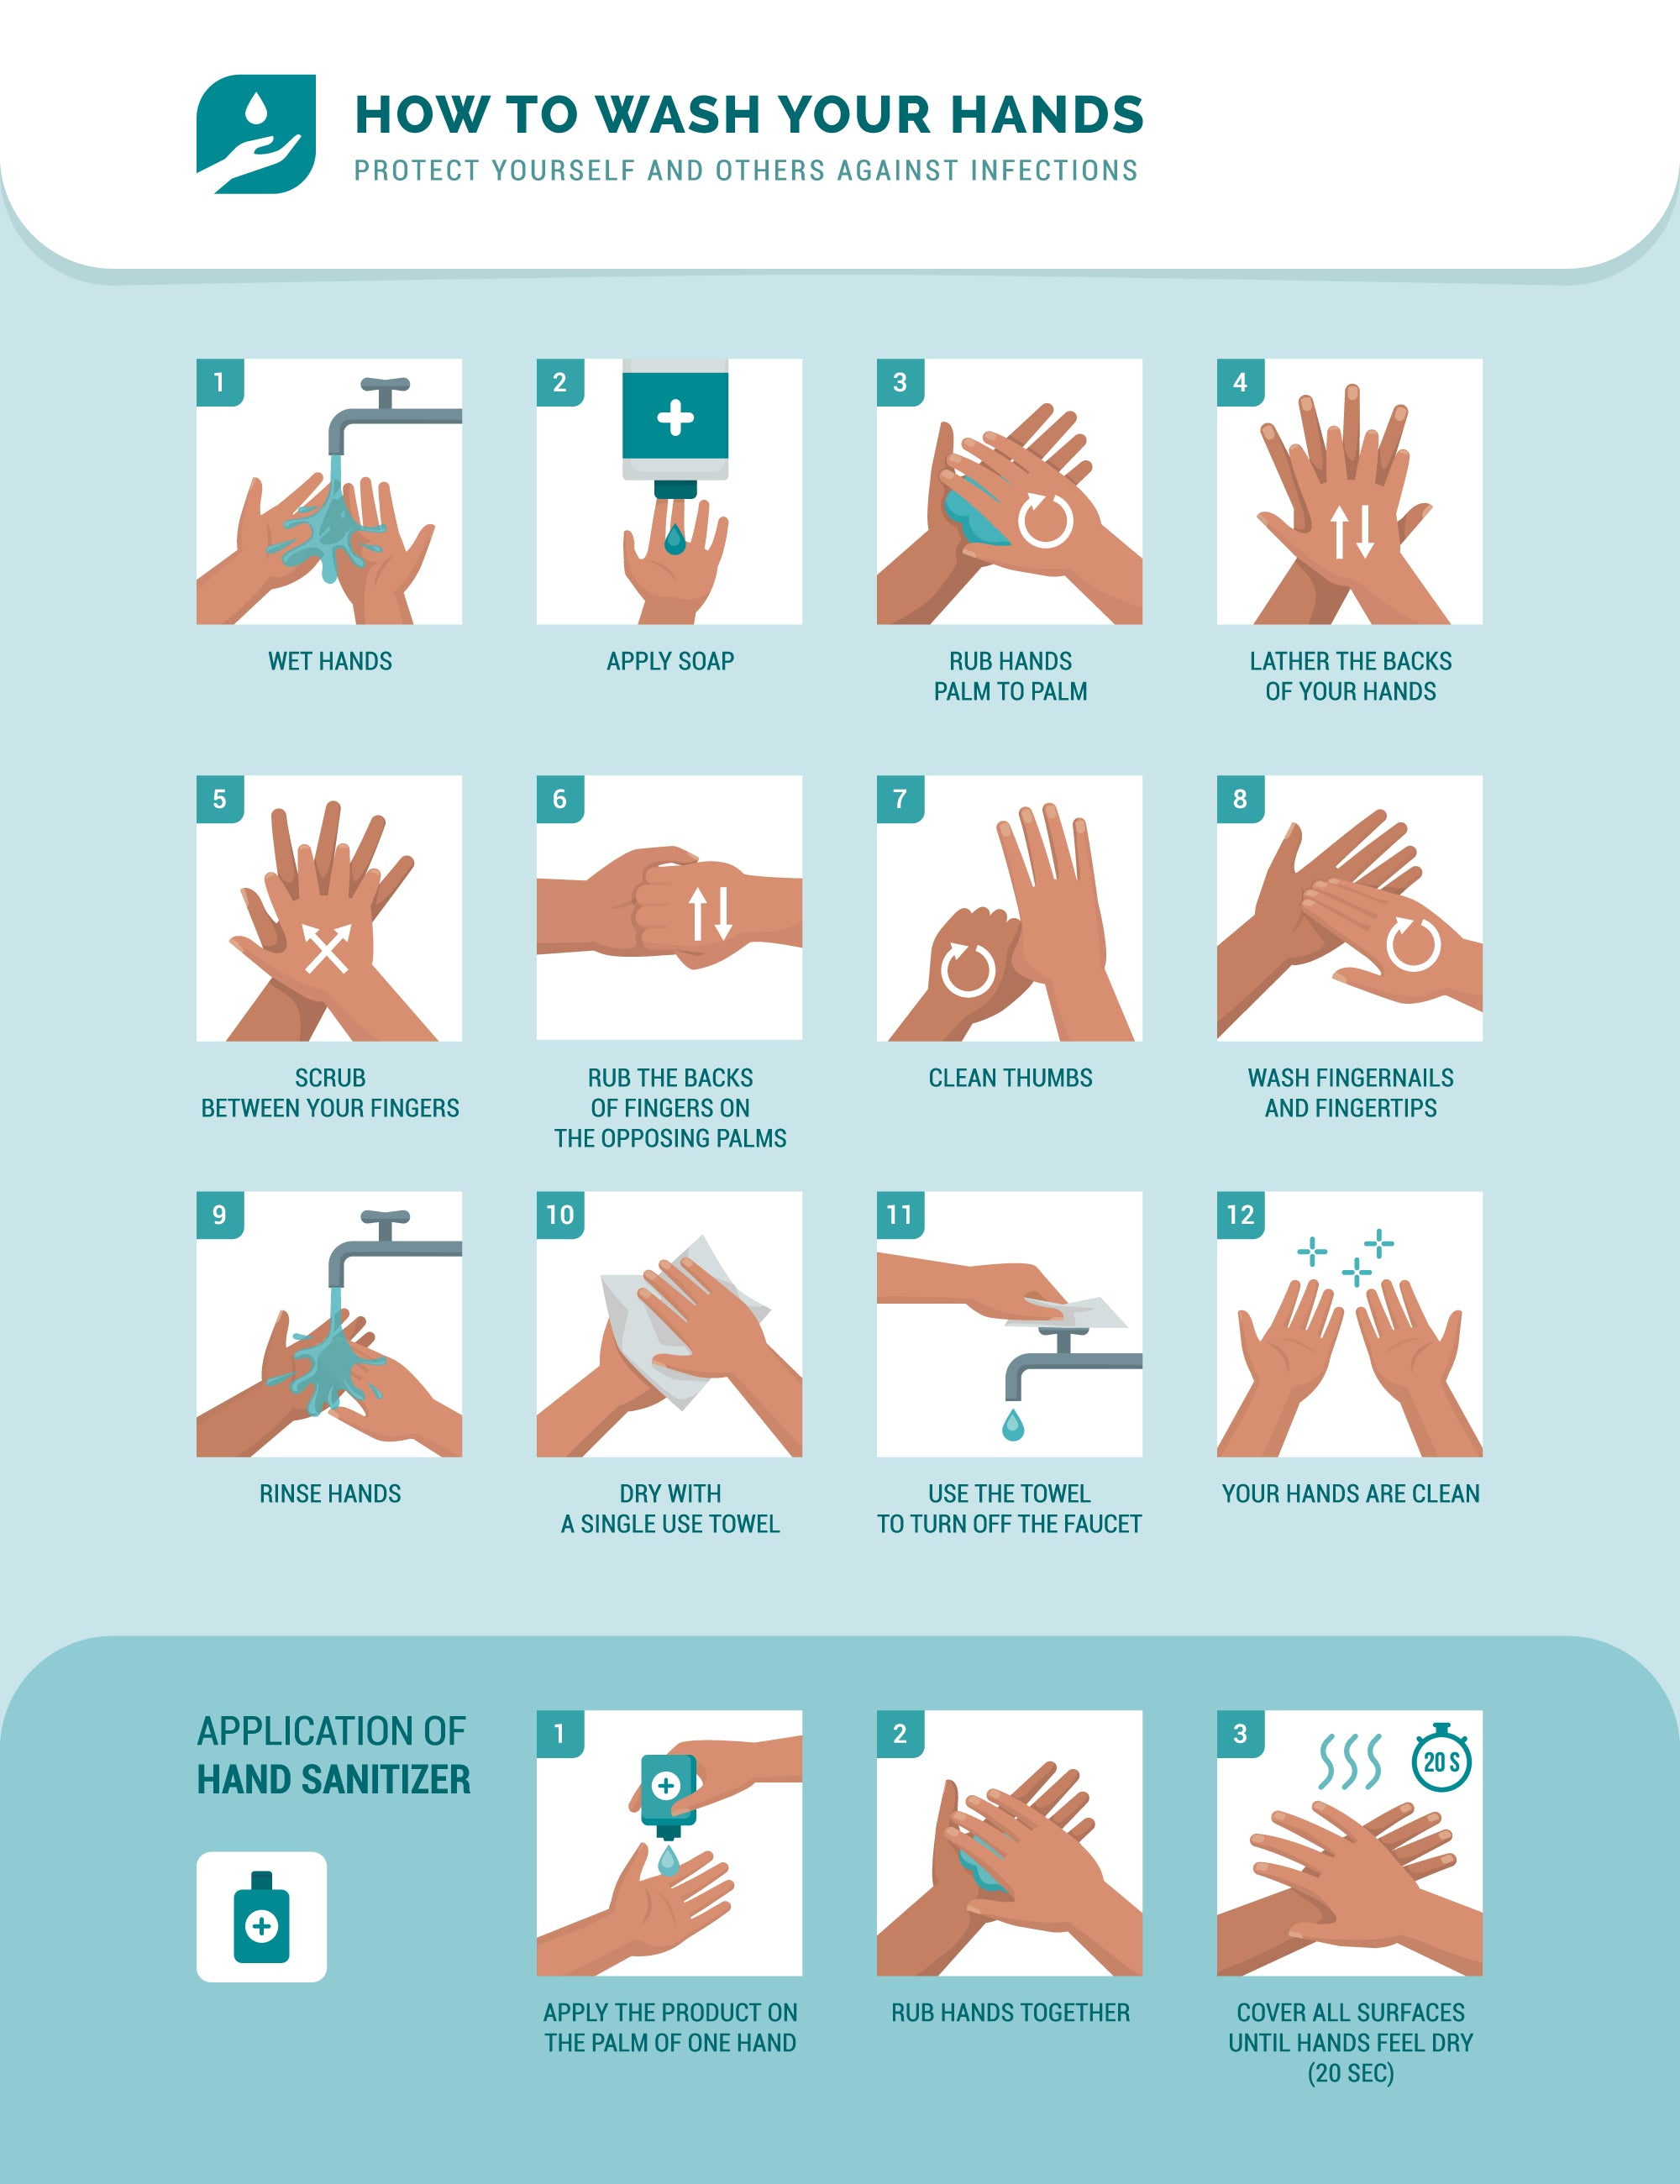 Tips for Effective Hand Washing